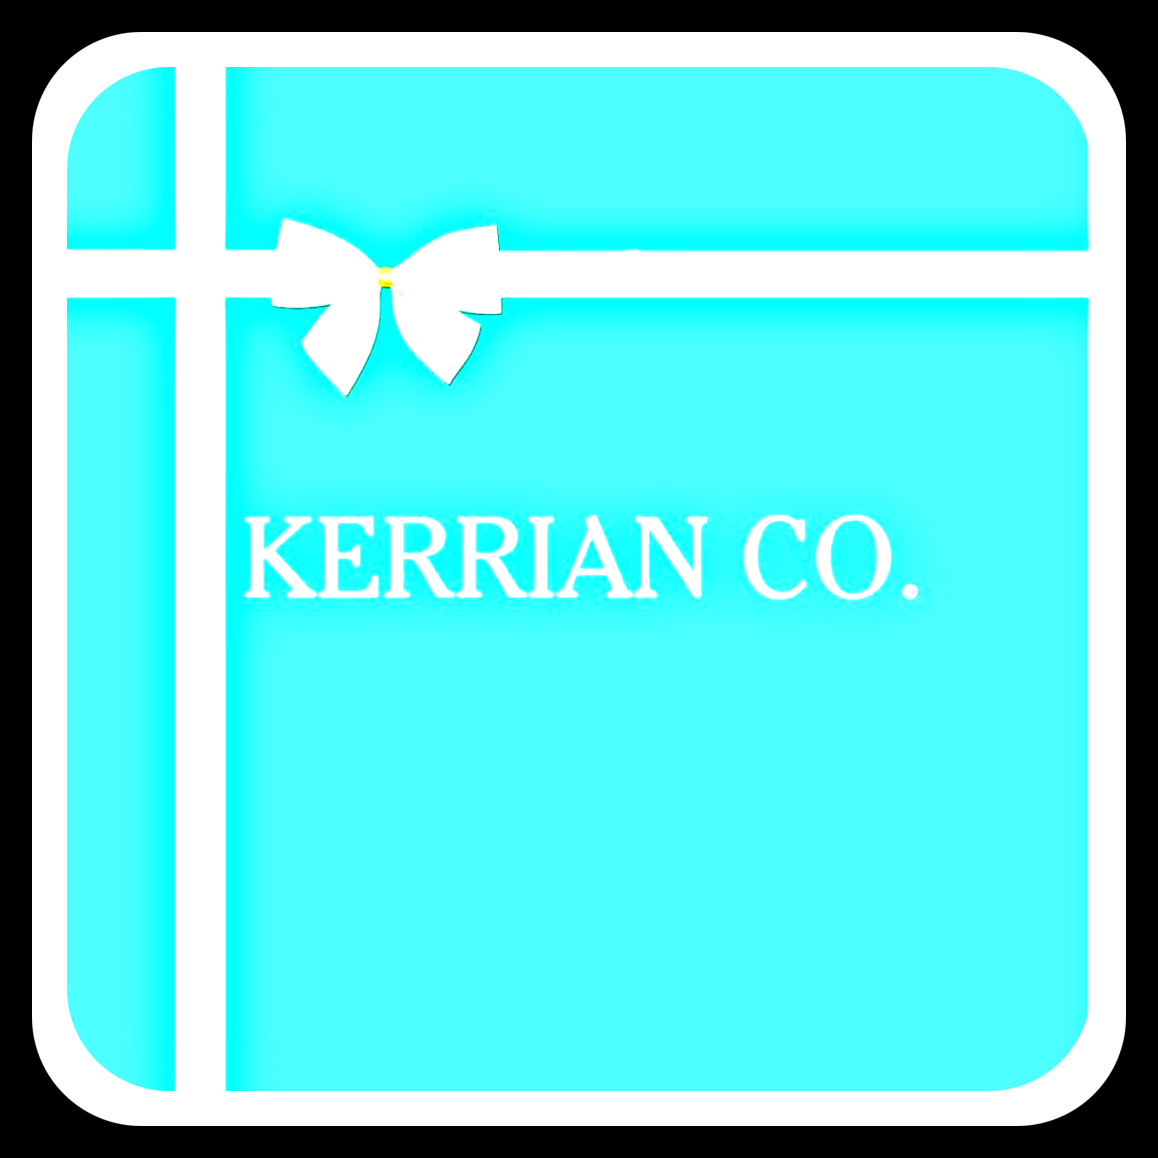 Kerrian Co.